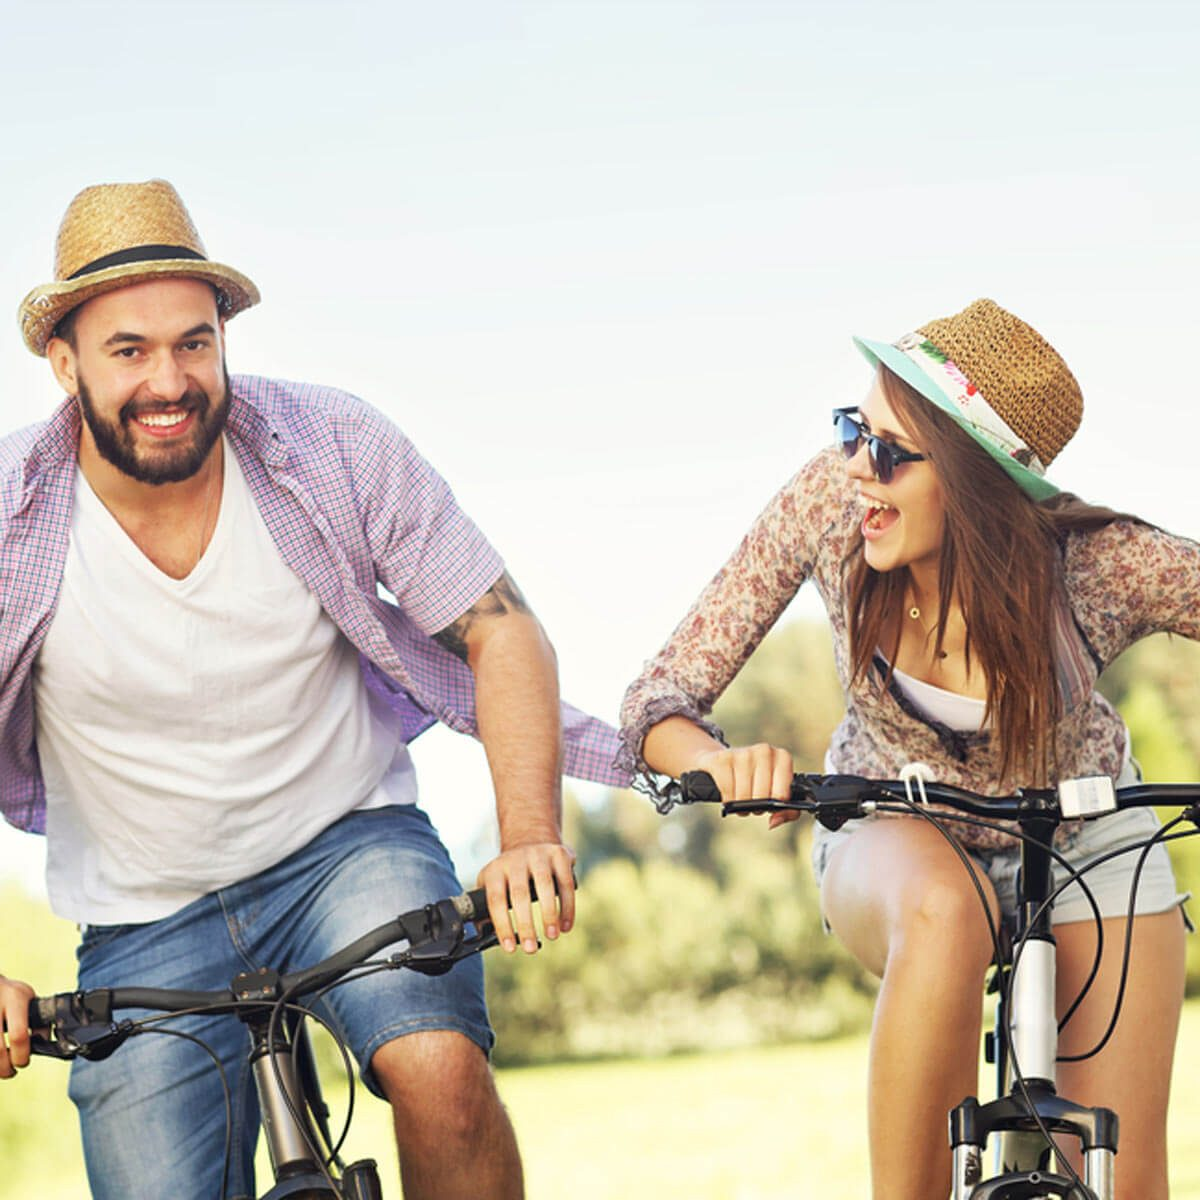 shutterstock_443128585 riding bikes vacation